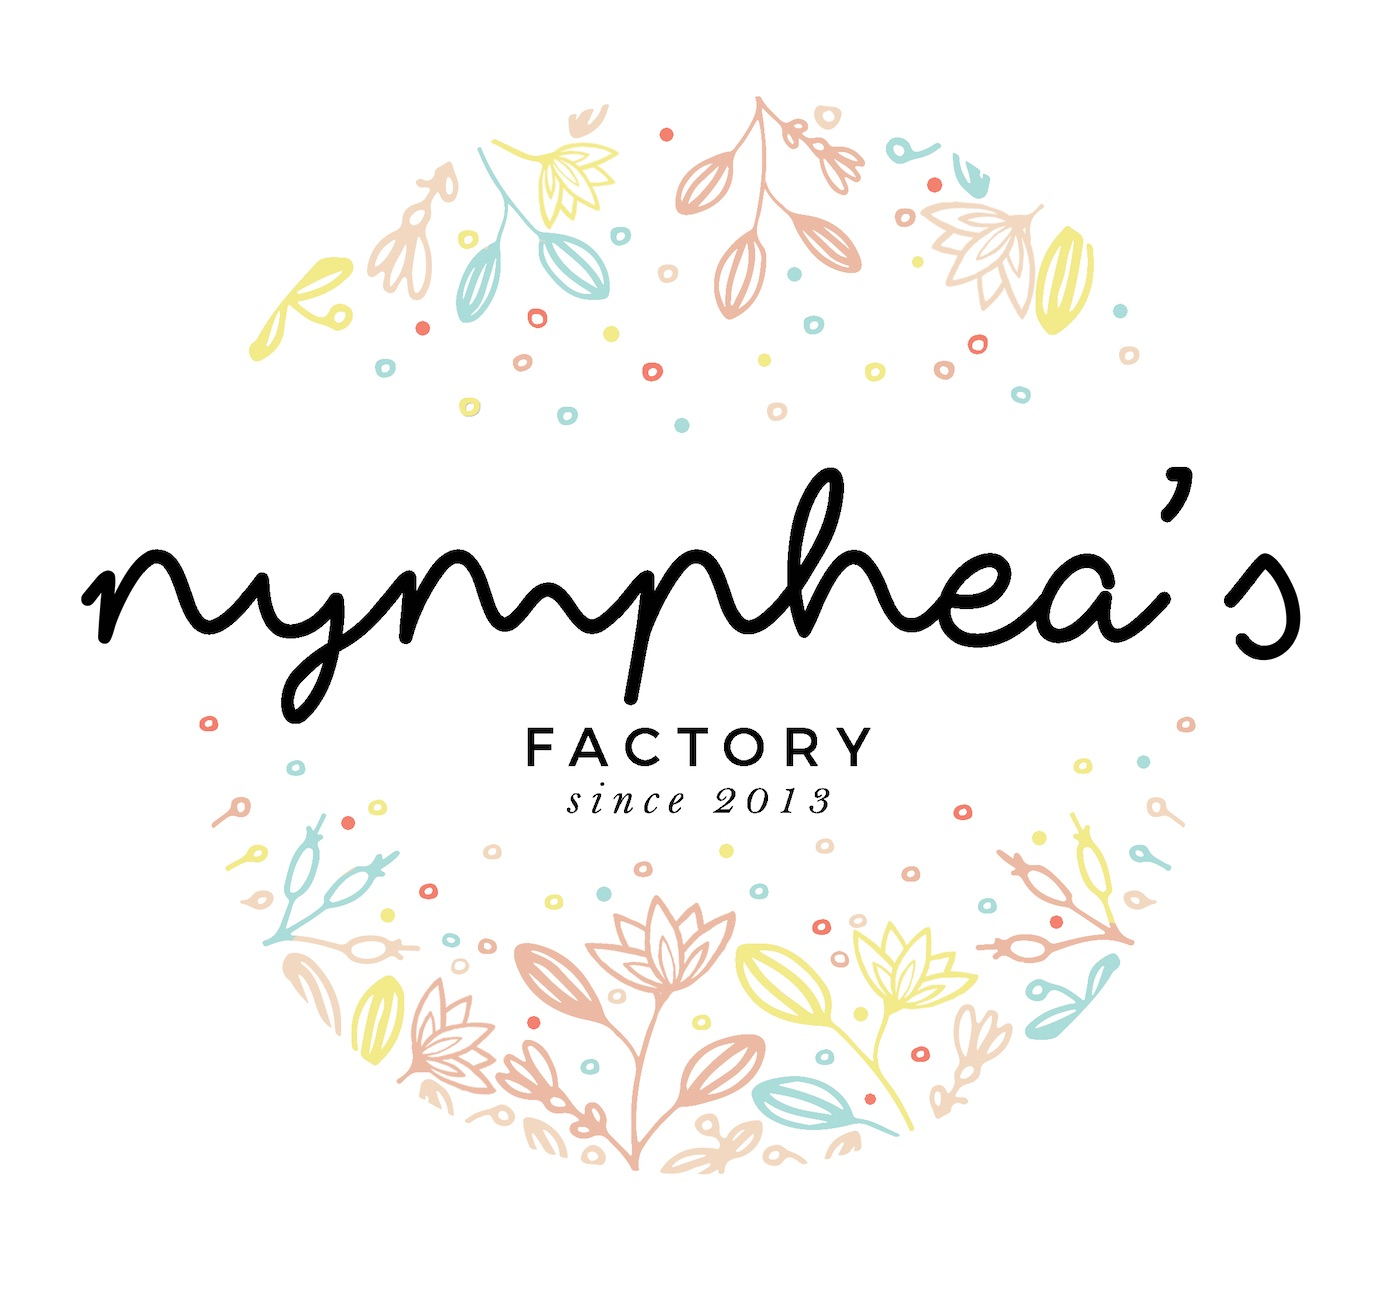 Nymphea's Factory